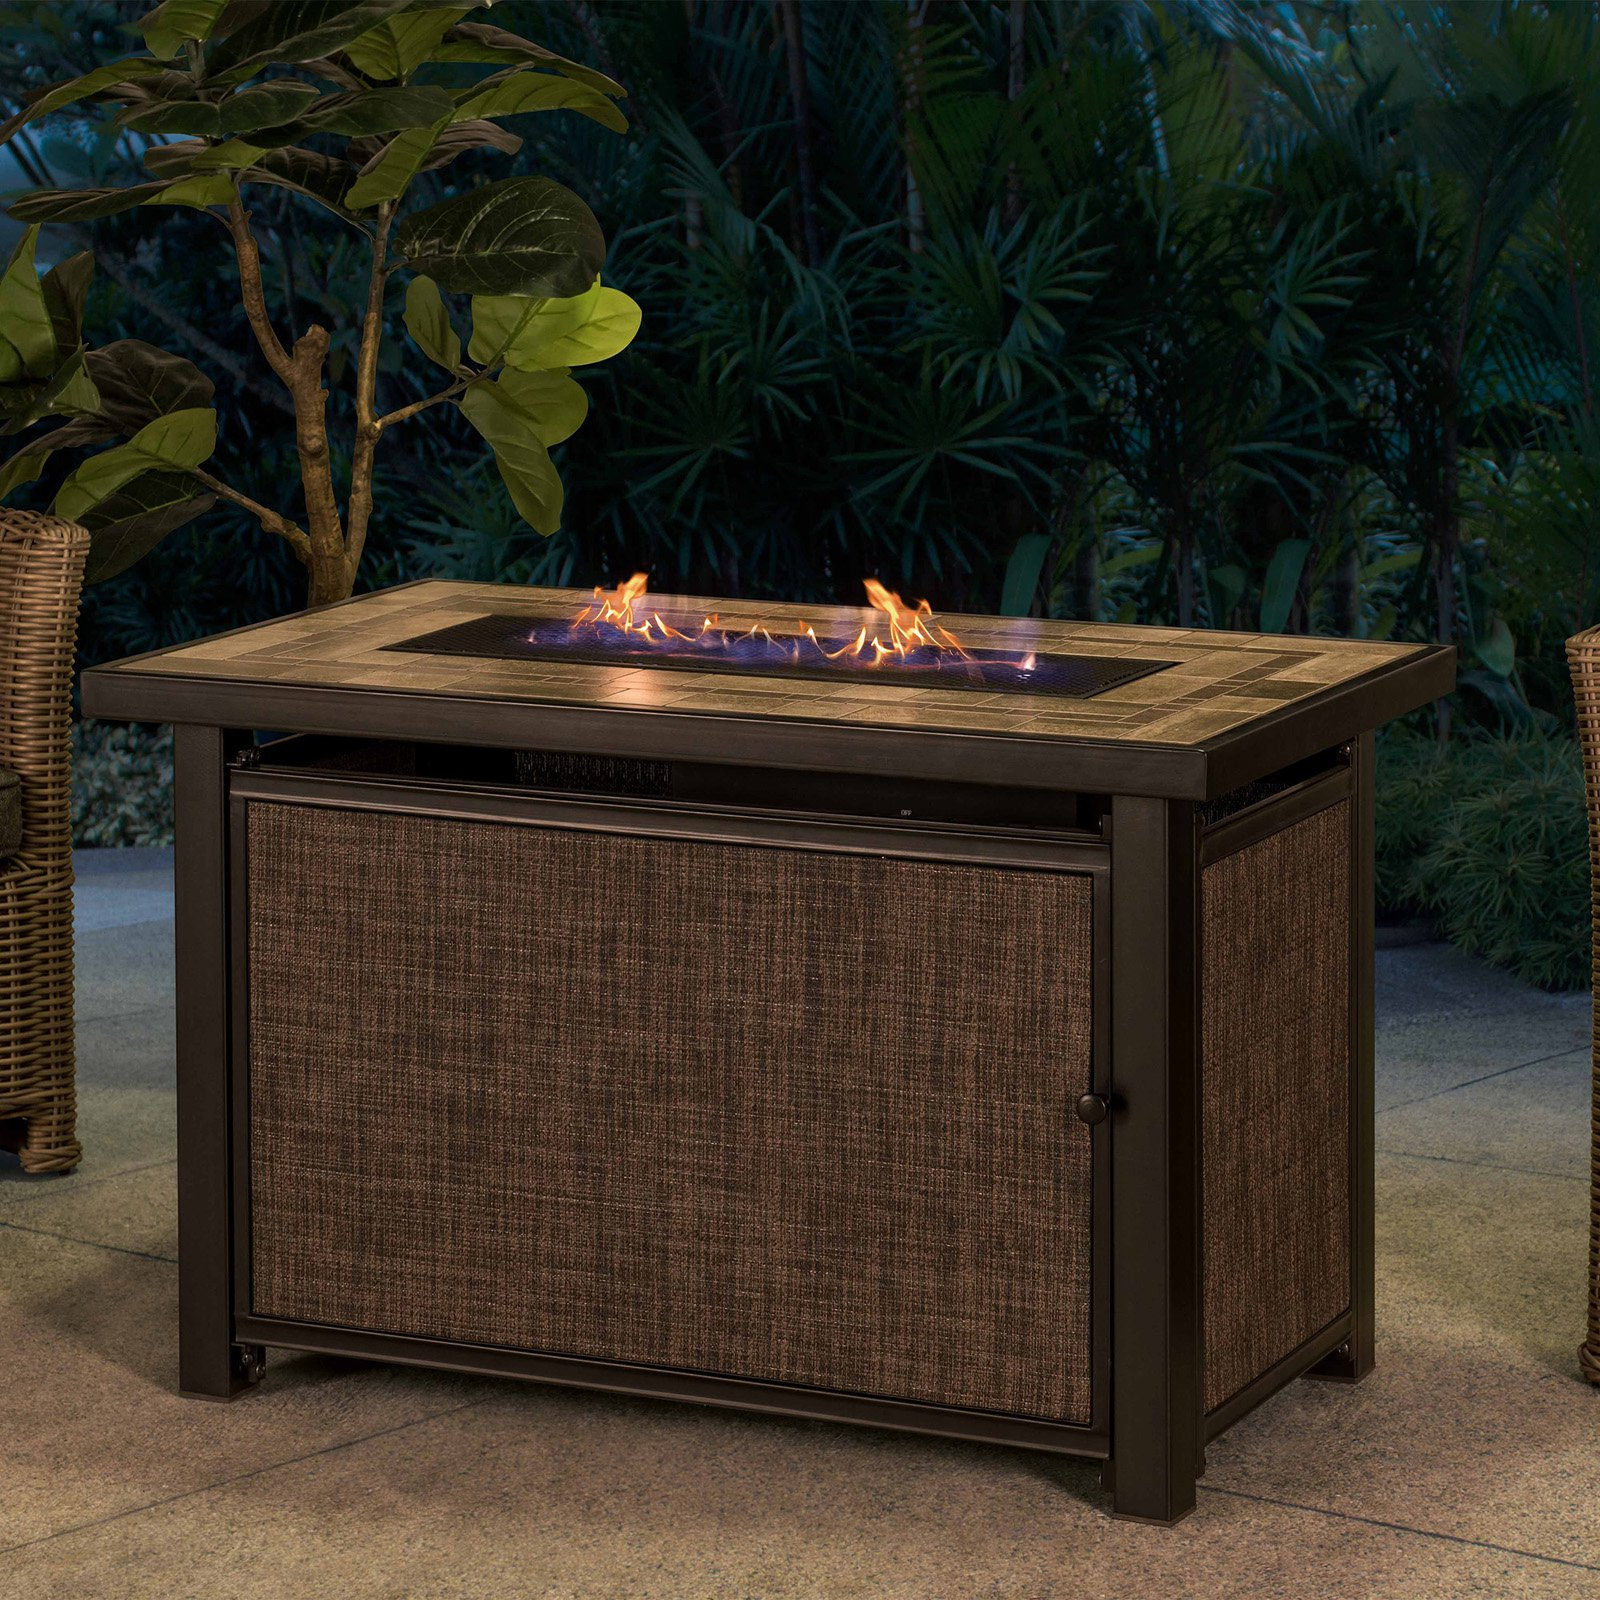 Hartnell Rectangular Lp Fire Pit Table Walmart Com Walmart Com